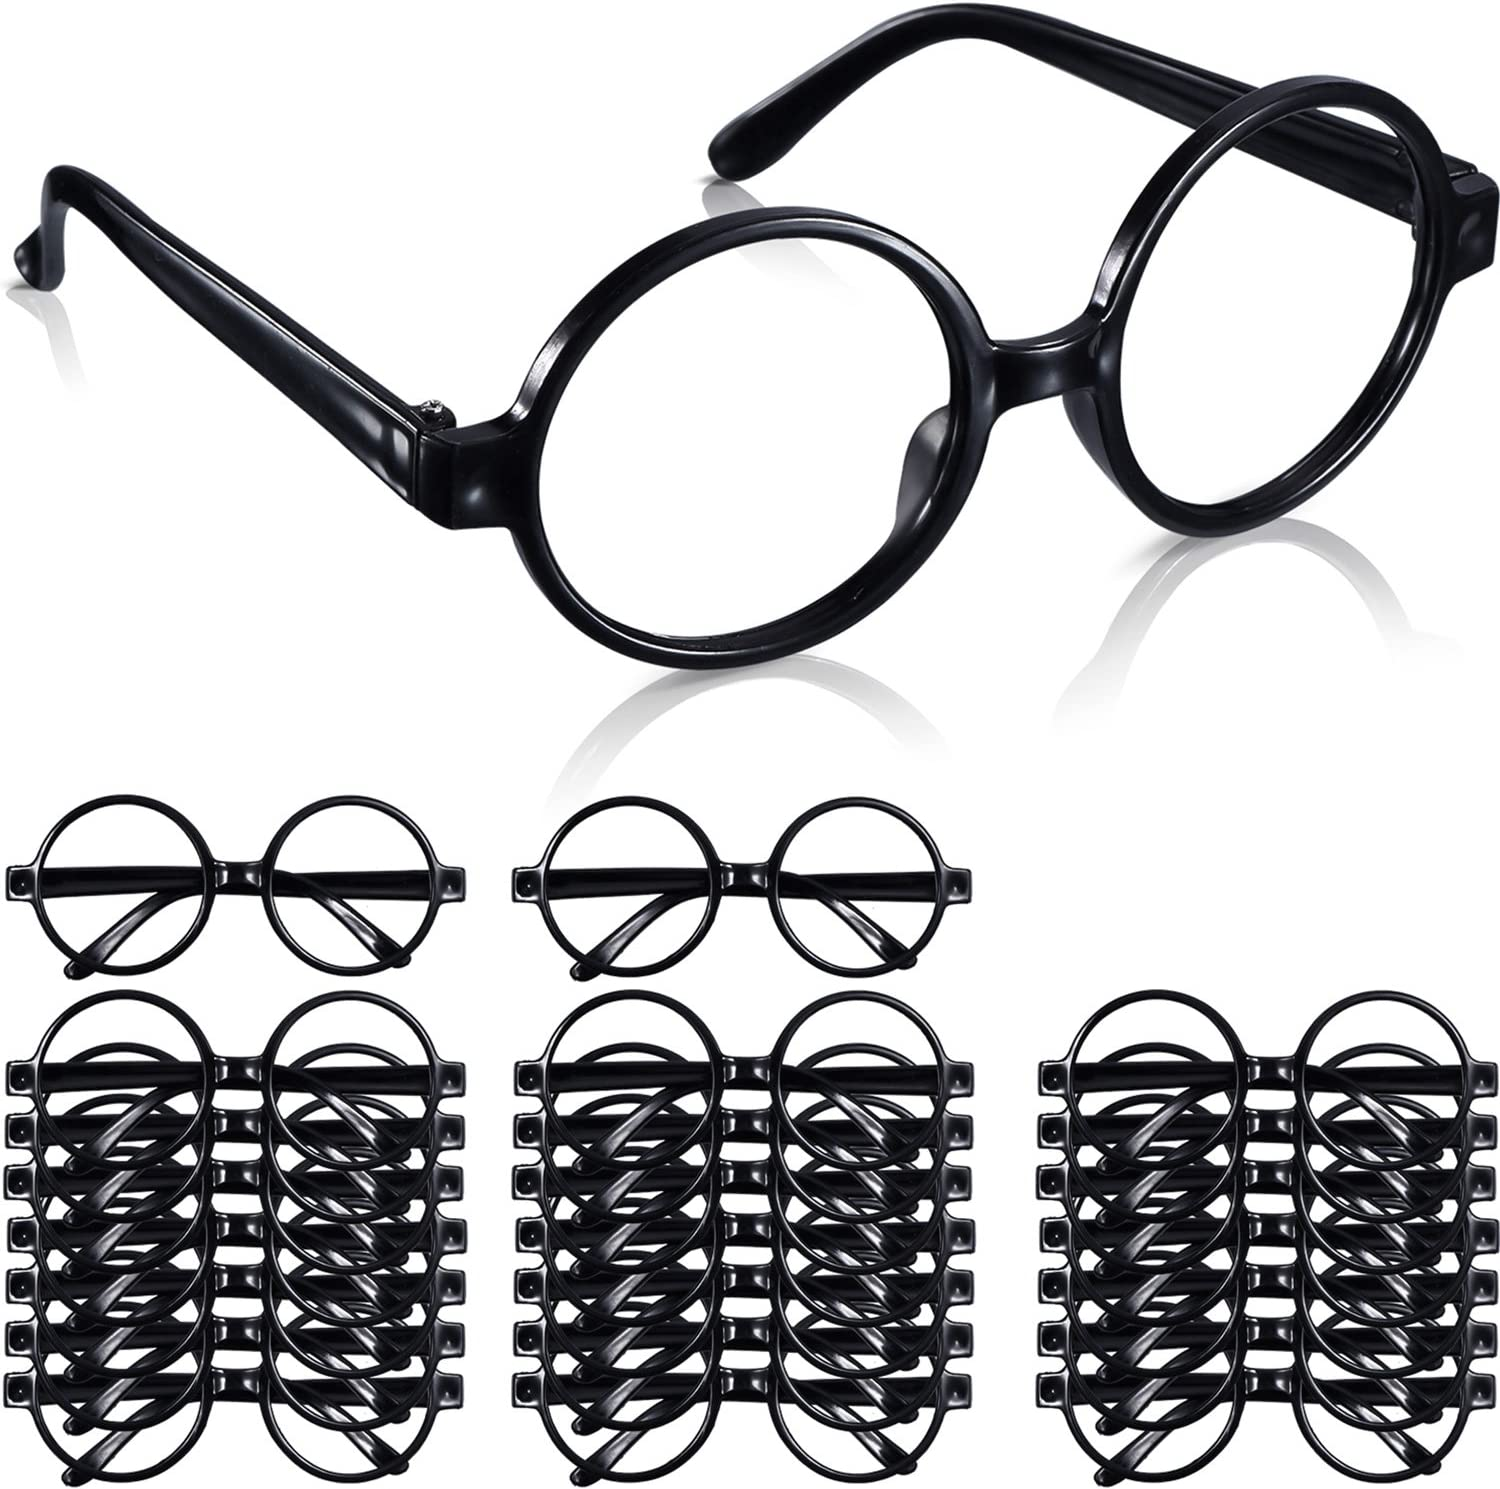 Plastic Wizard Glasses Round Glasses Frame No Lenses for Halloween Costume Party Supplies (24 Packs)